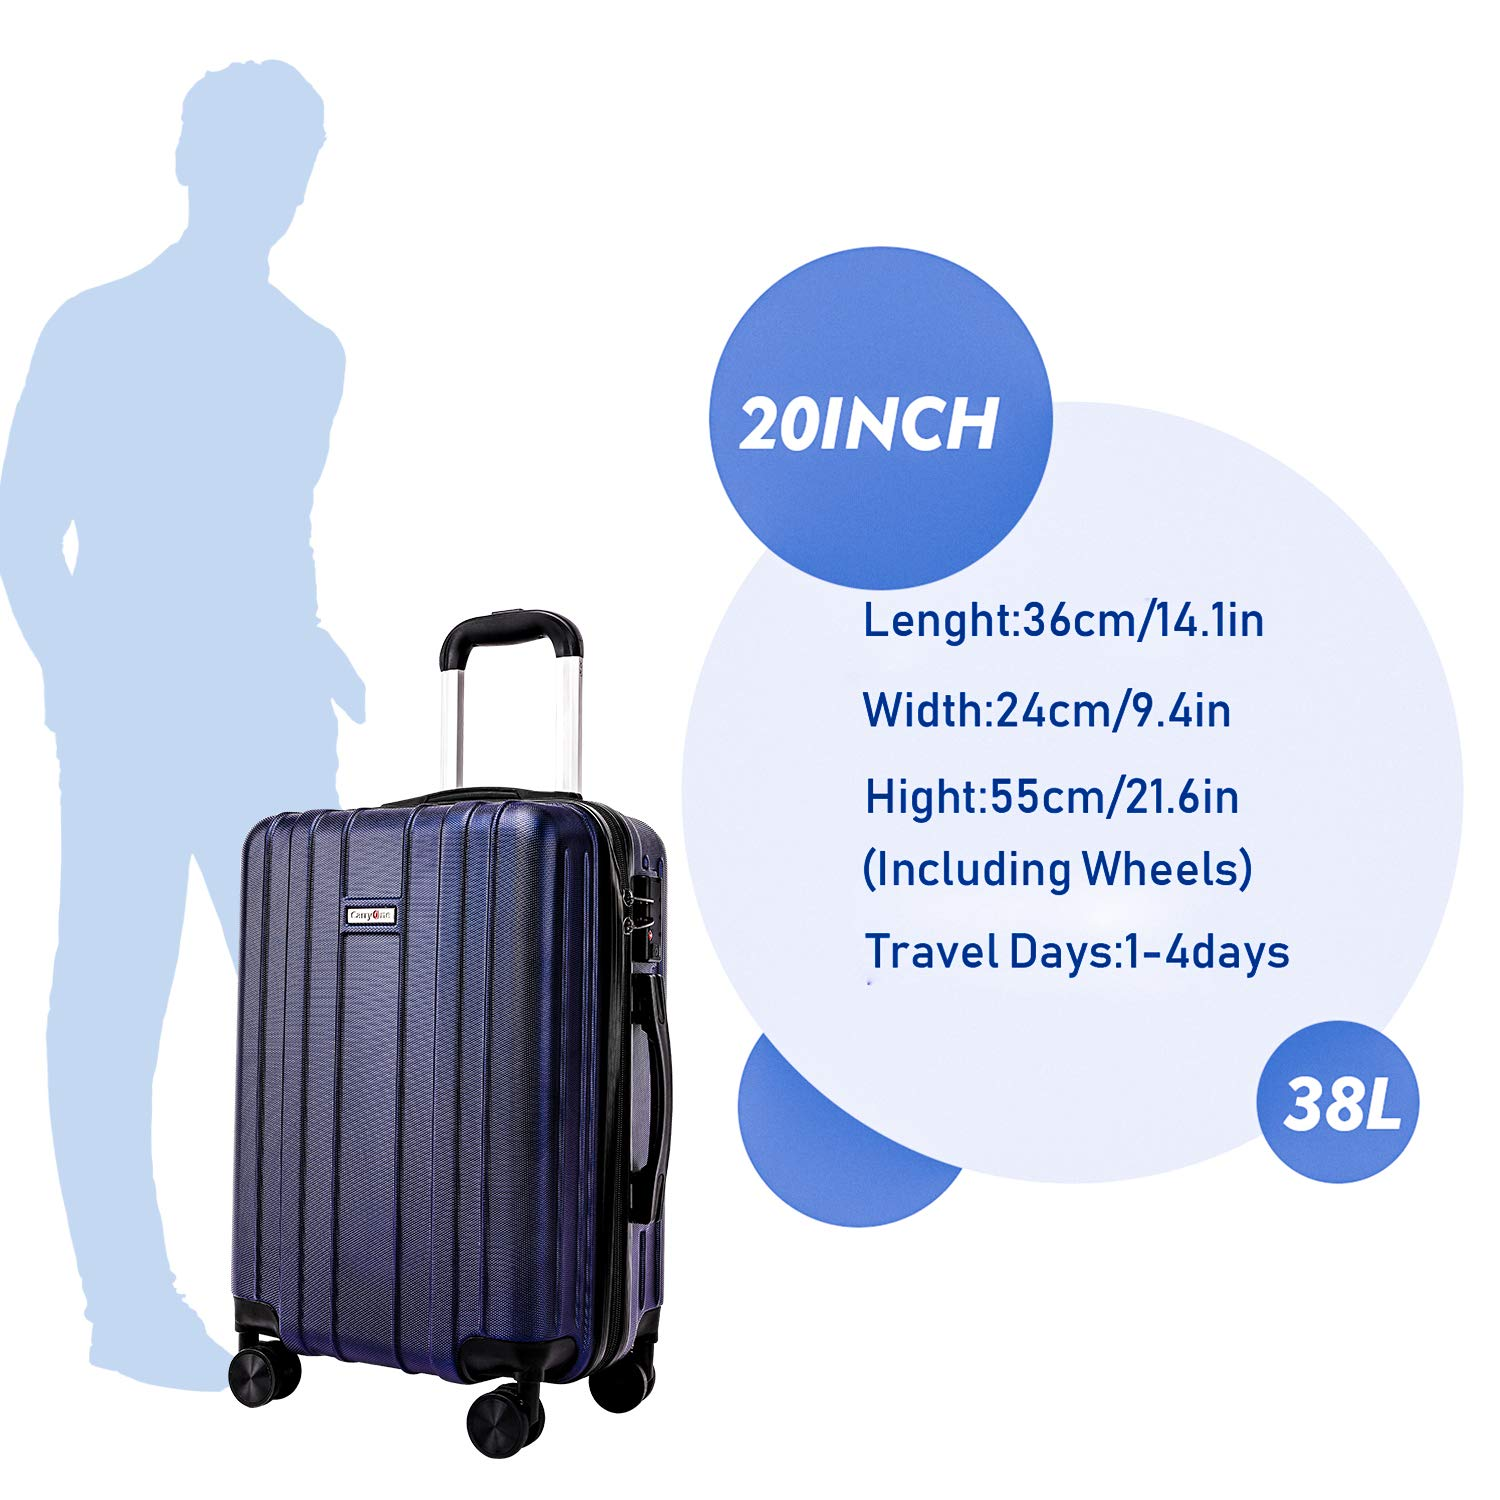 CarryOne Luggage Lightweight Suitcase ABS 3 Piece Set with TSA Lock Spinner Wheels TD3-Blue(20in,24in,28in)